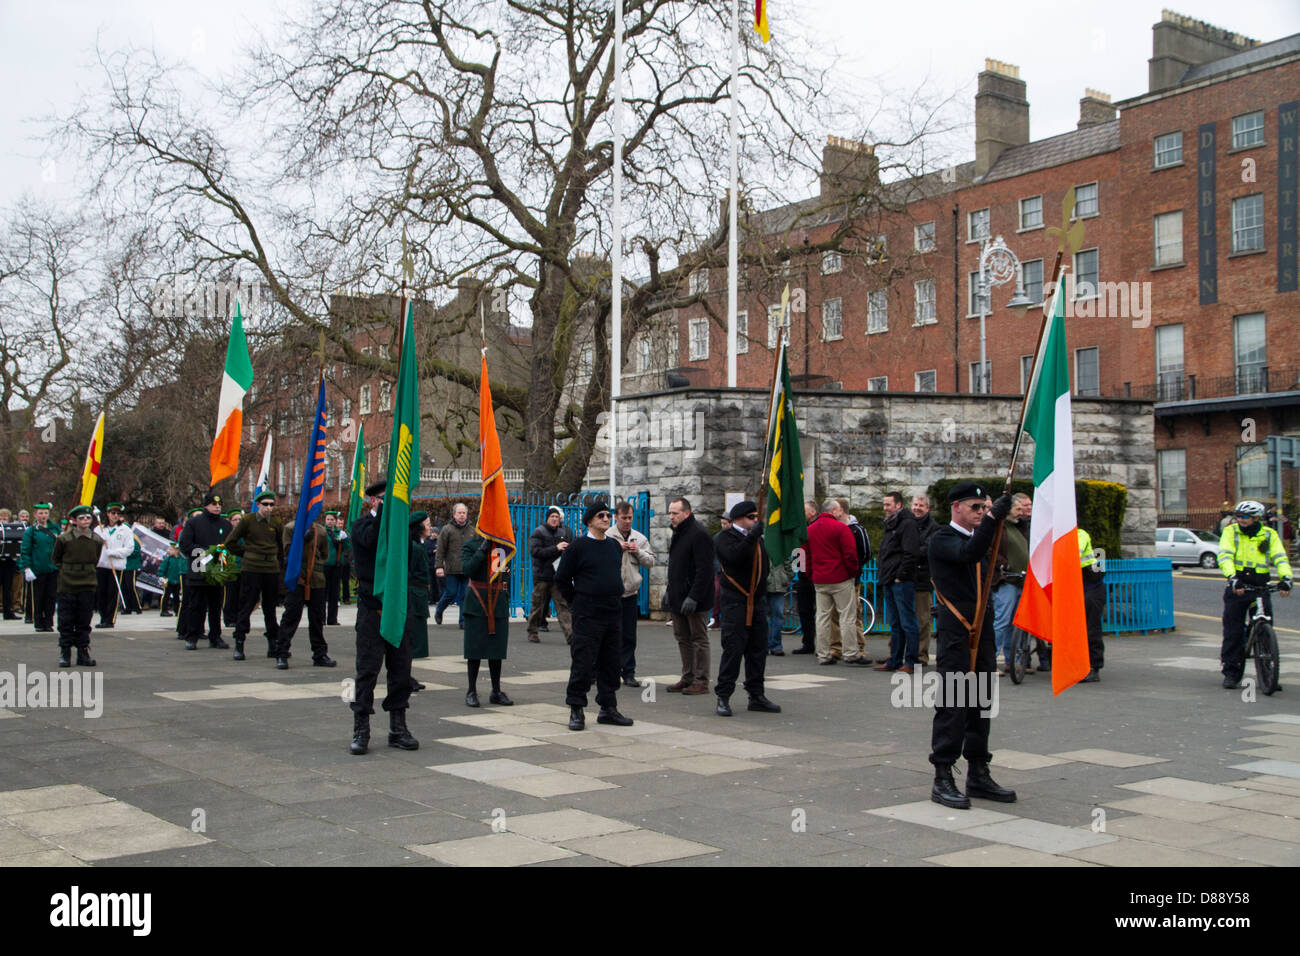 Dissident group Republican Sinn Fein march to the GPO in Dublin to commemorate the Easter Rising of 1916 - Stock Image